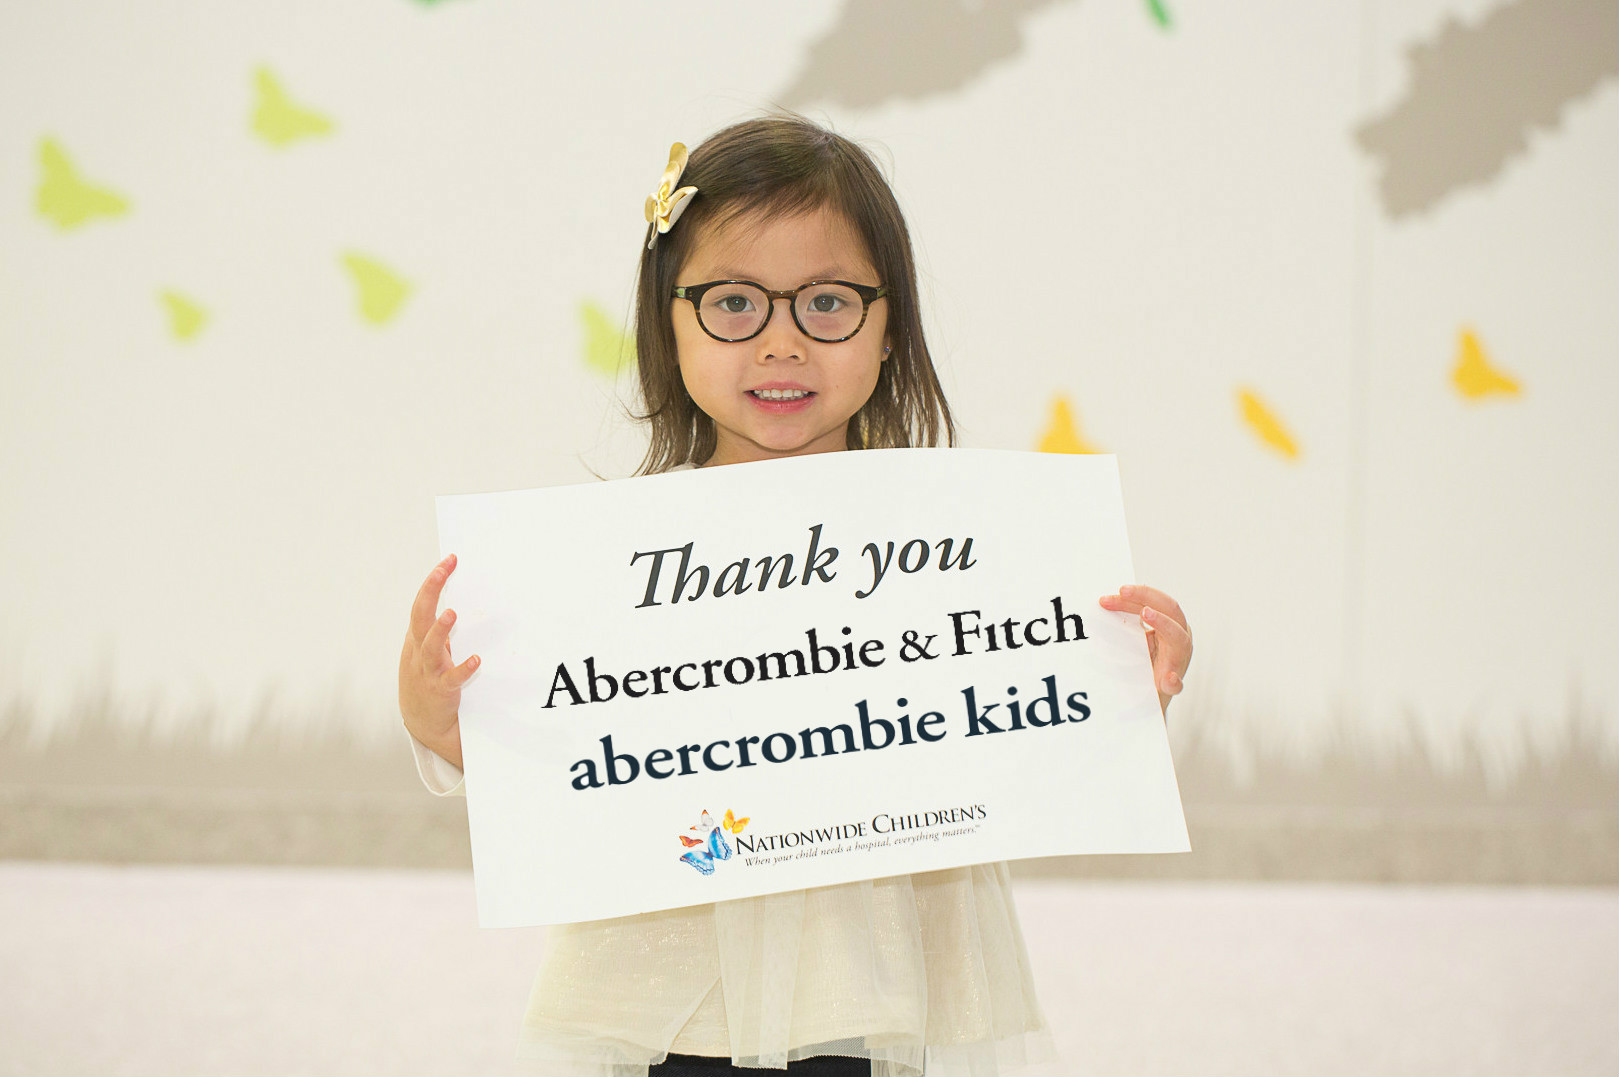 abercrombie and fitch for kids